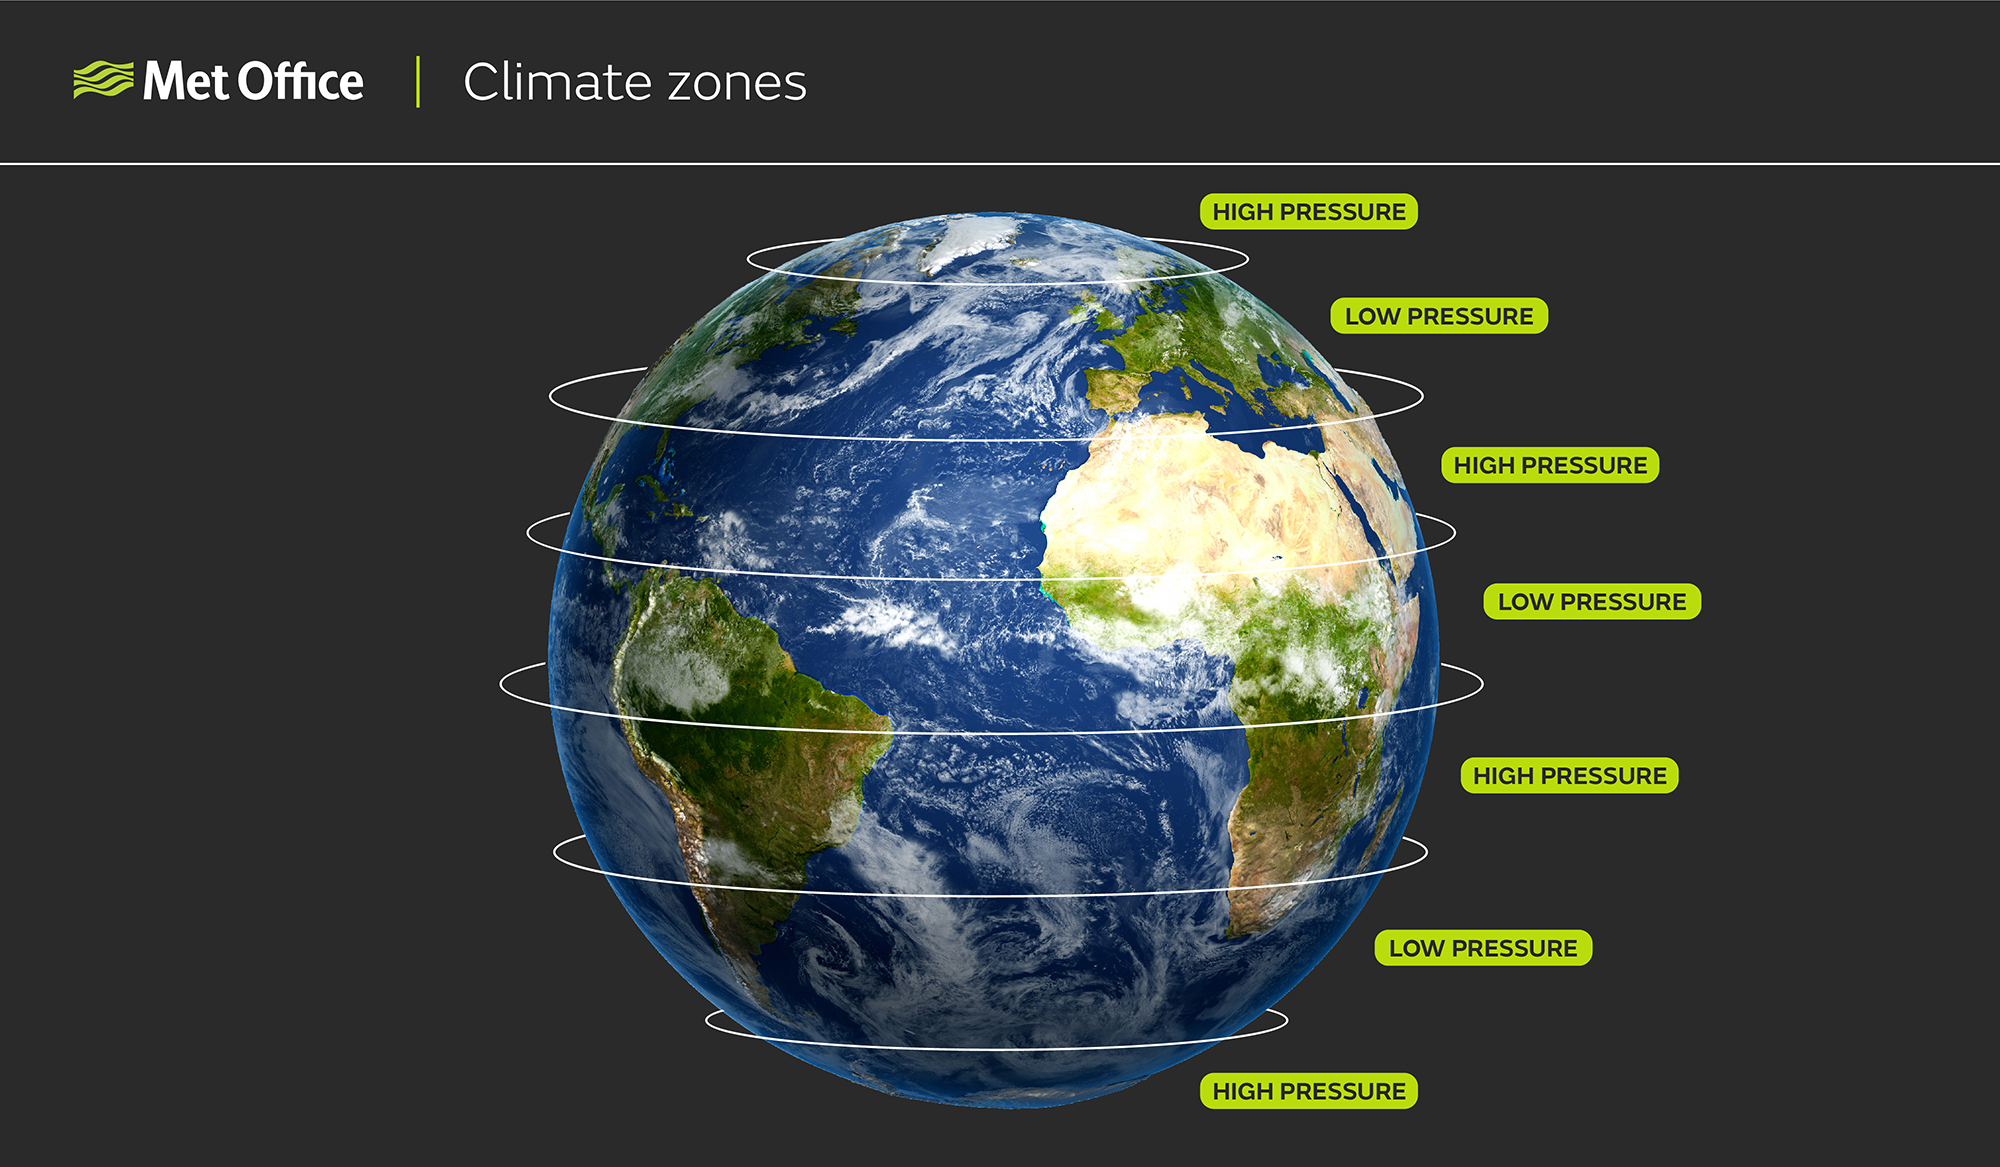 Climate zones: Diagram showing the Earth with semi-permanent pressure zones resulting in climate zones which are visible on the Earths land surface, for example the brown colour of the land across the northern part of Africa where high pressure results in desert due to sinking, dry air, and the very green stripe of land across equatorial Africa as a result of the low pressure zone leading to rising air and wet conditions.